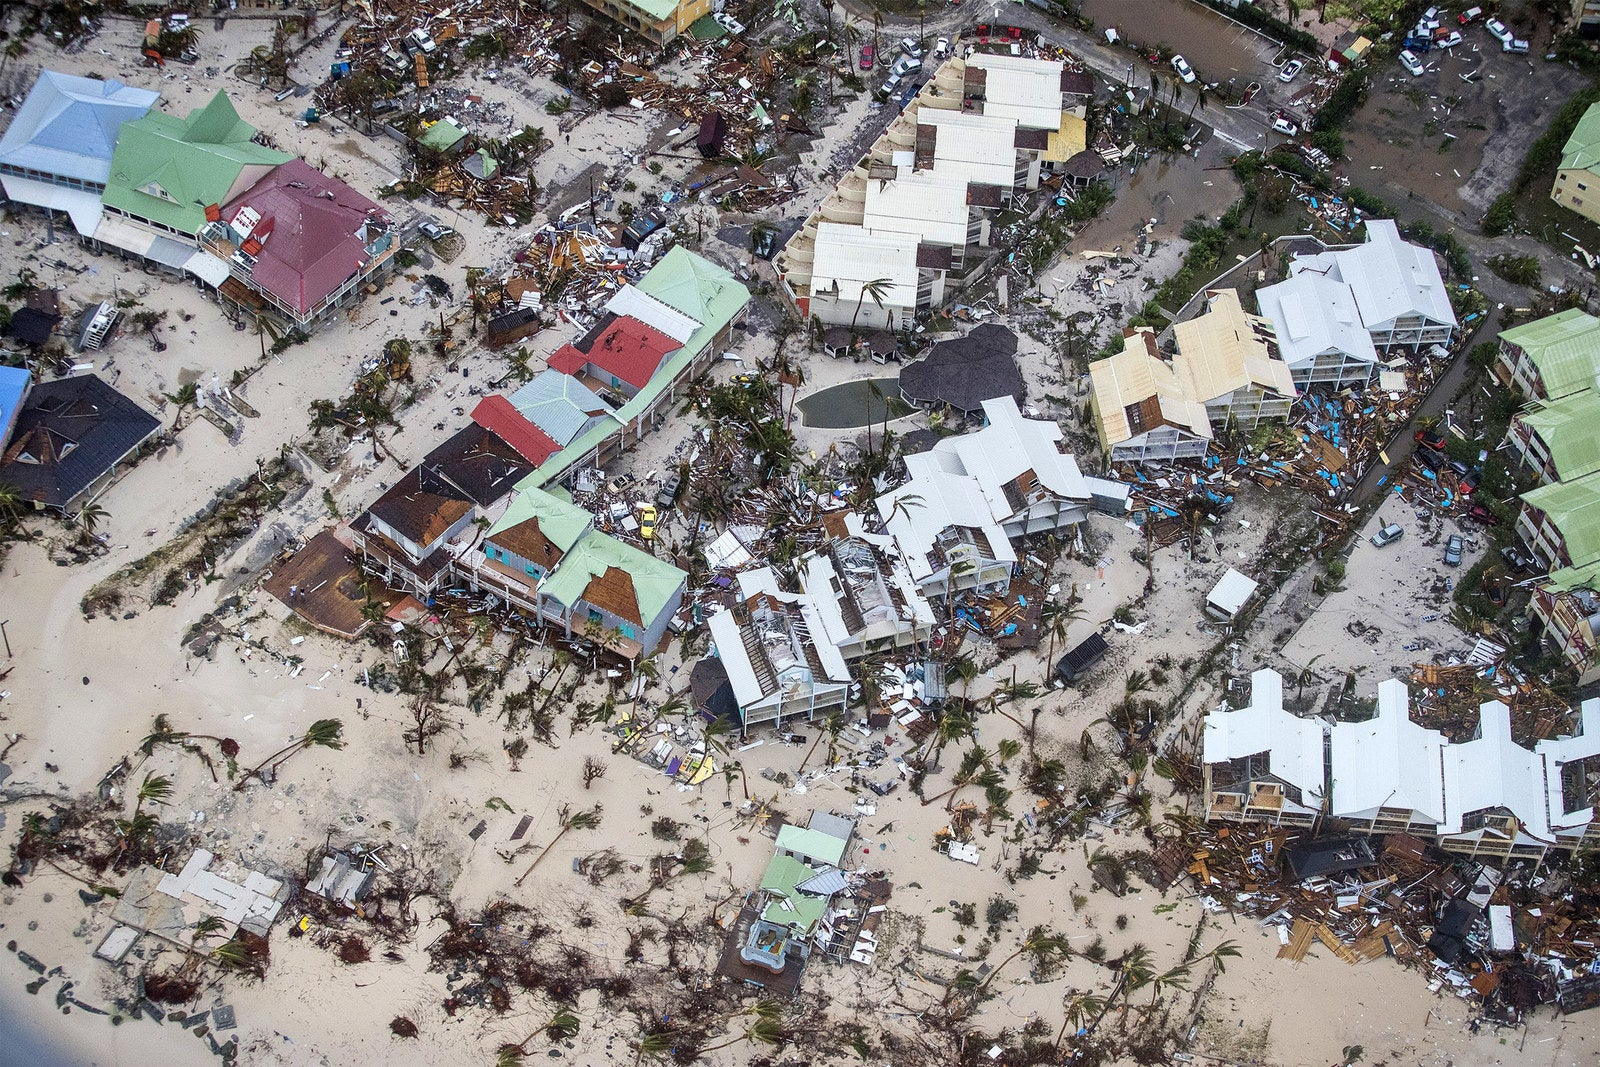 An aerial photograph taken and released by the Dutch department of Defense on Wednesday shows the damage of Hurricane Irma in Philipsburg on the Dutch Caribbean territory of Sint Maarten.